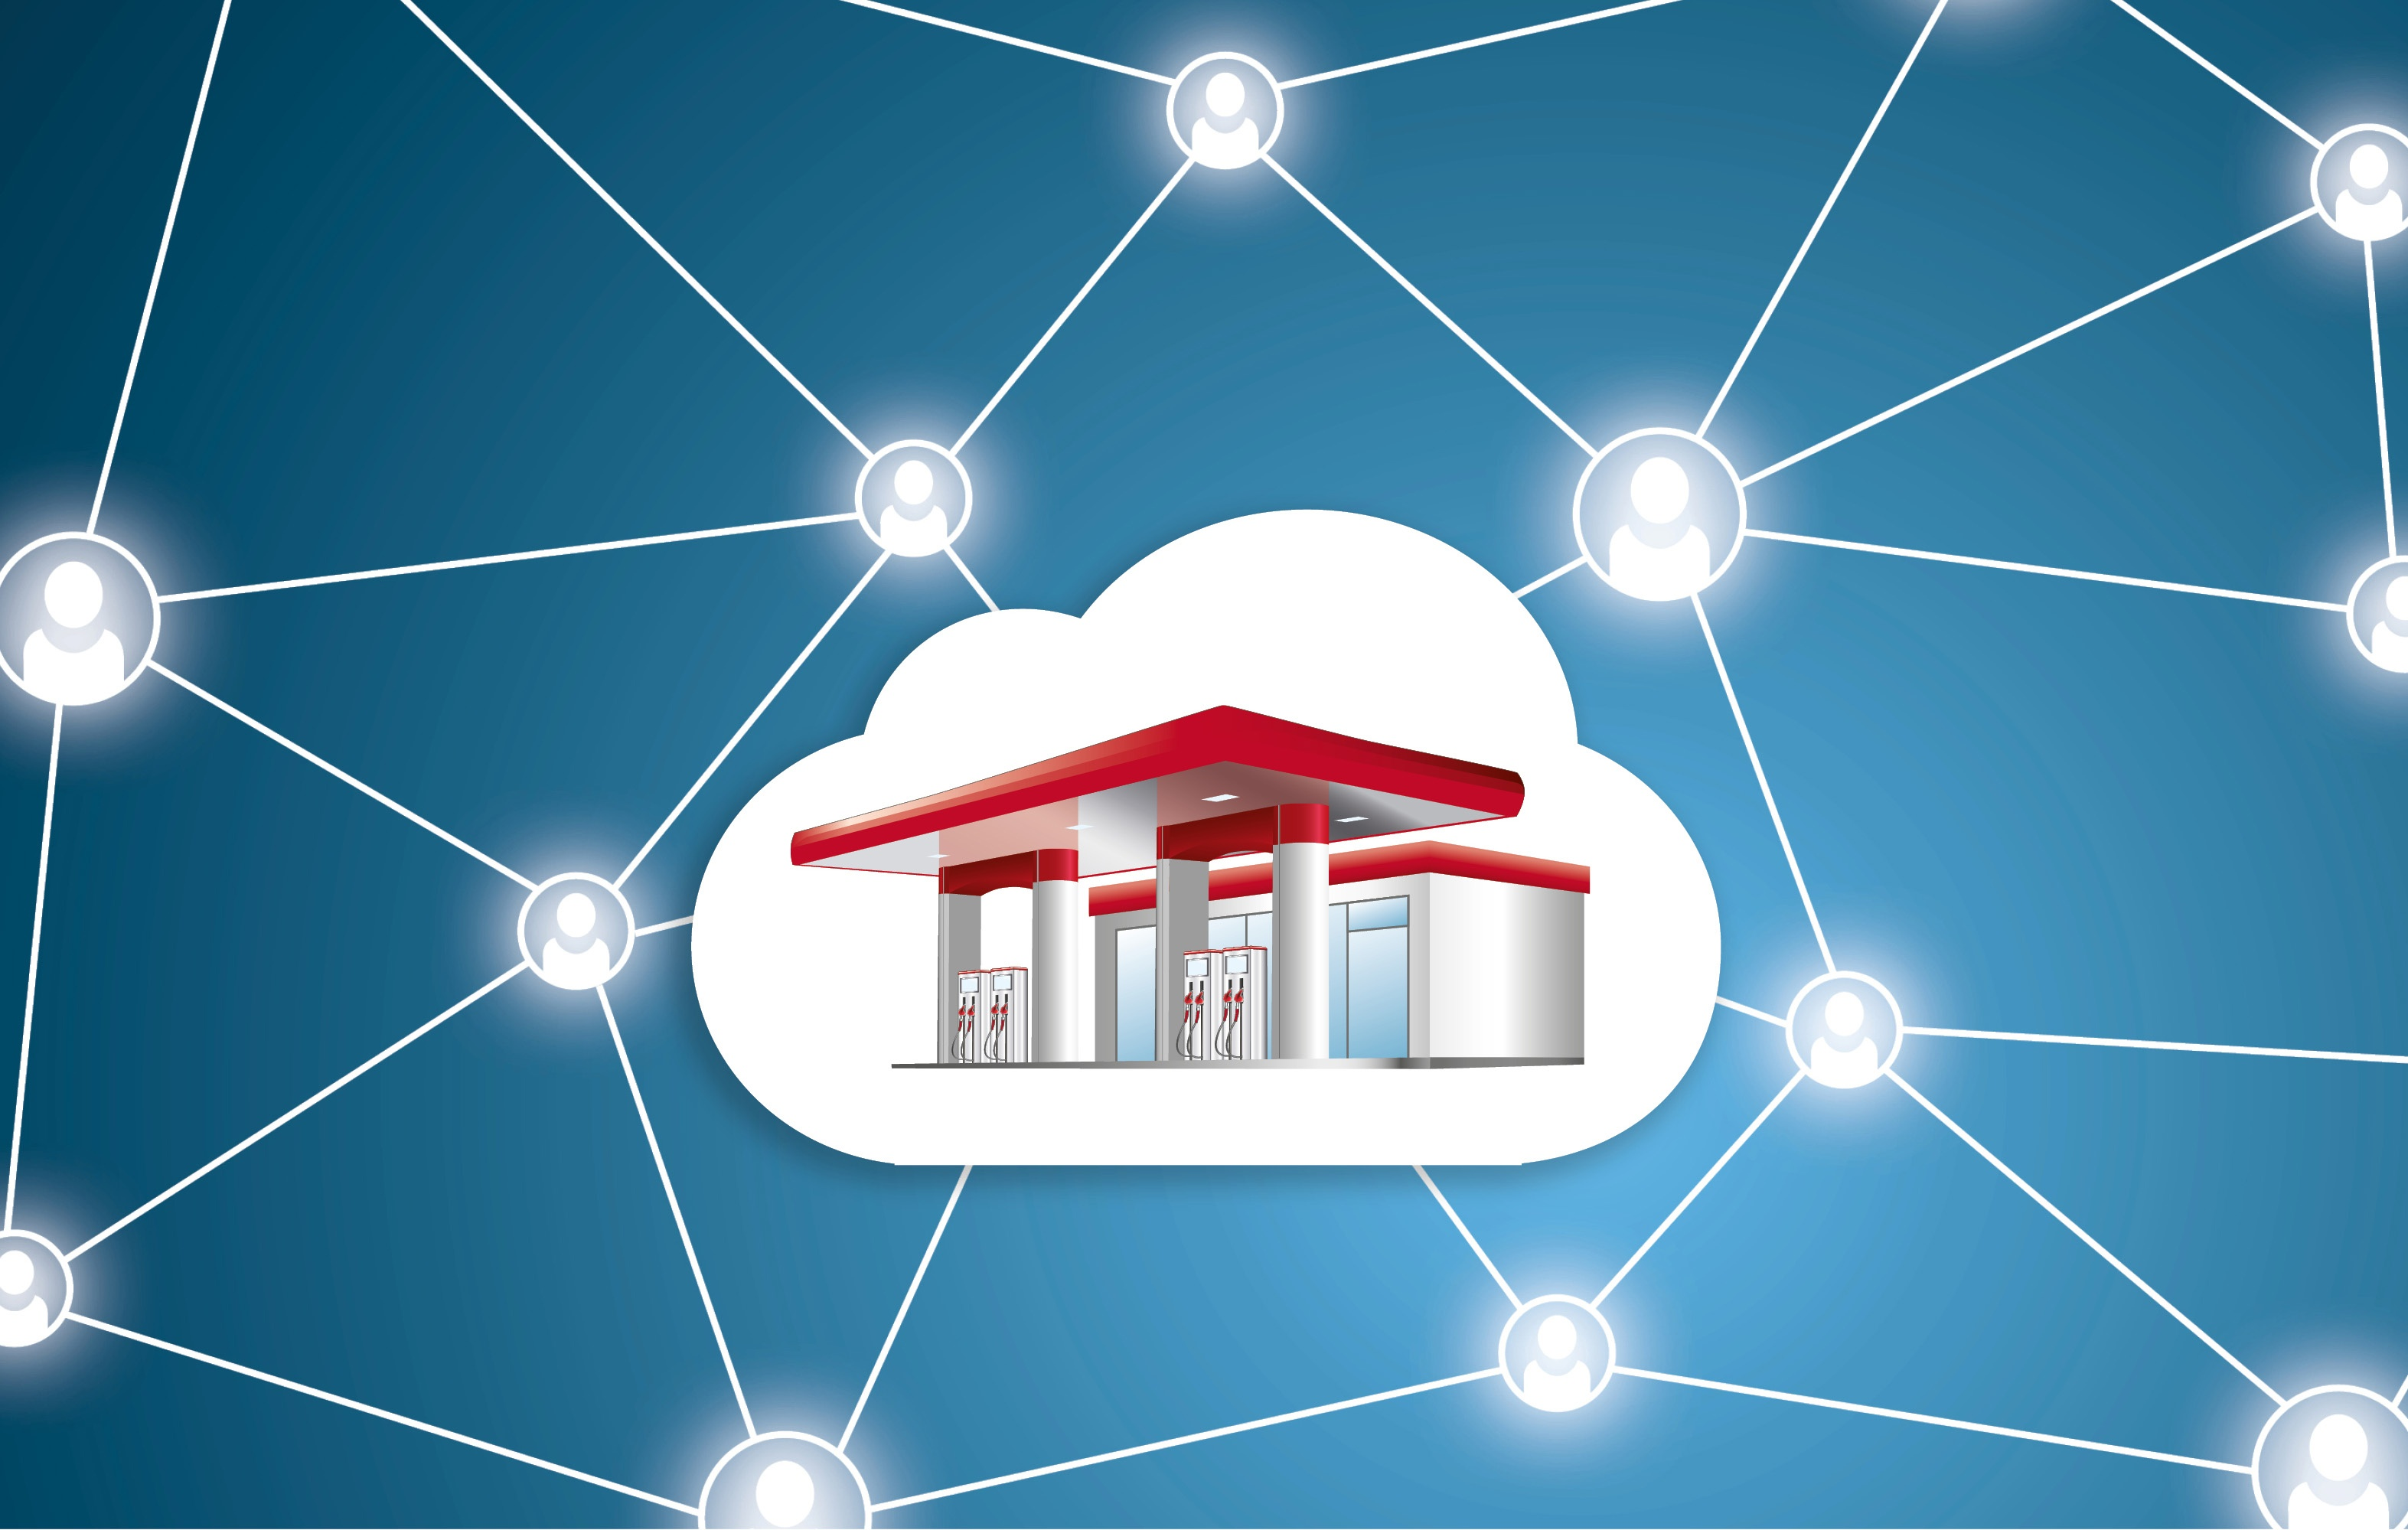 Fuel Retailing From the Cloud - Featured Image